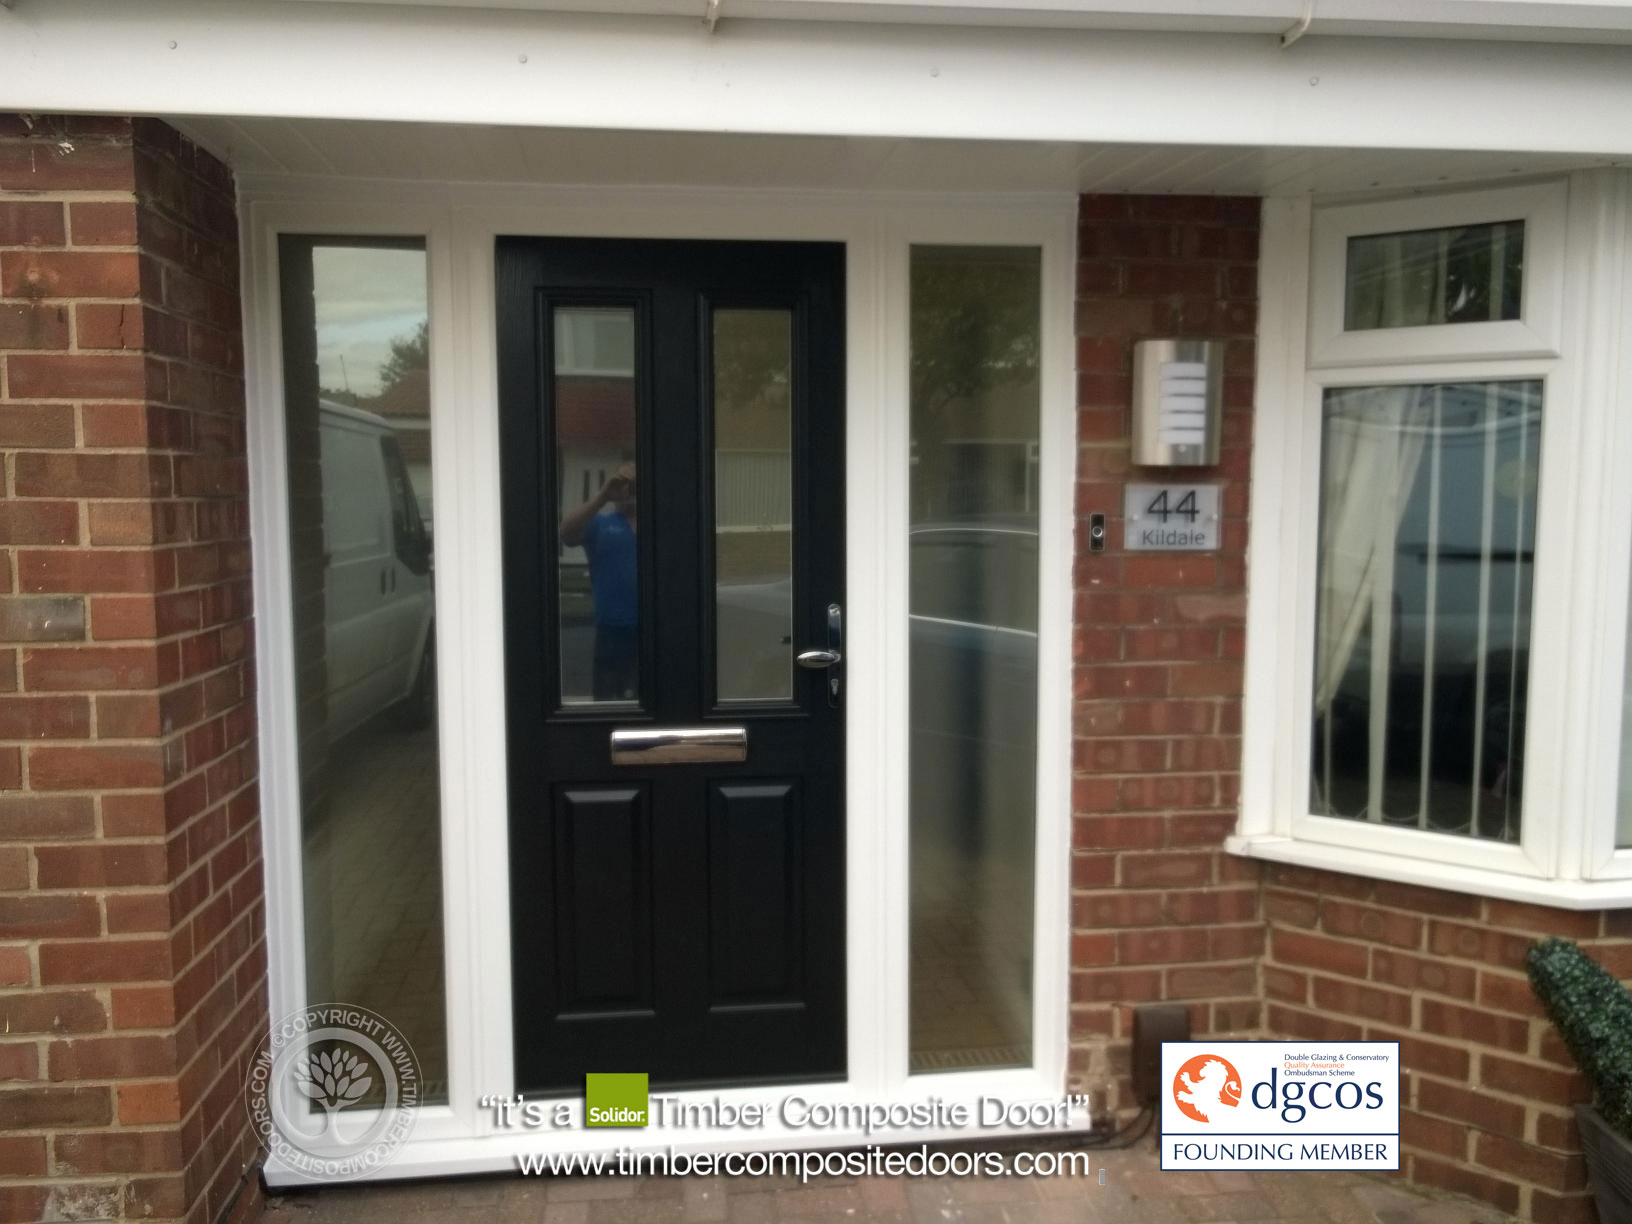 Black Ludlow Solidor Timber Composite Door 2 Composite